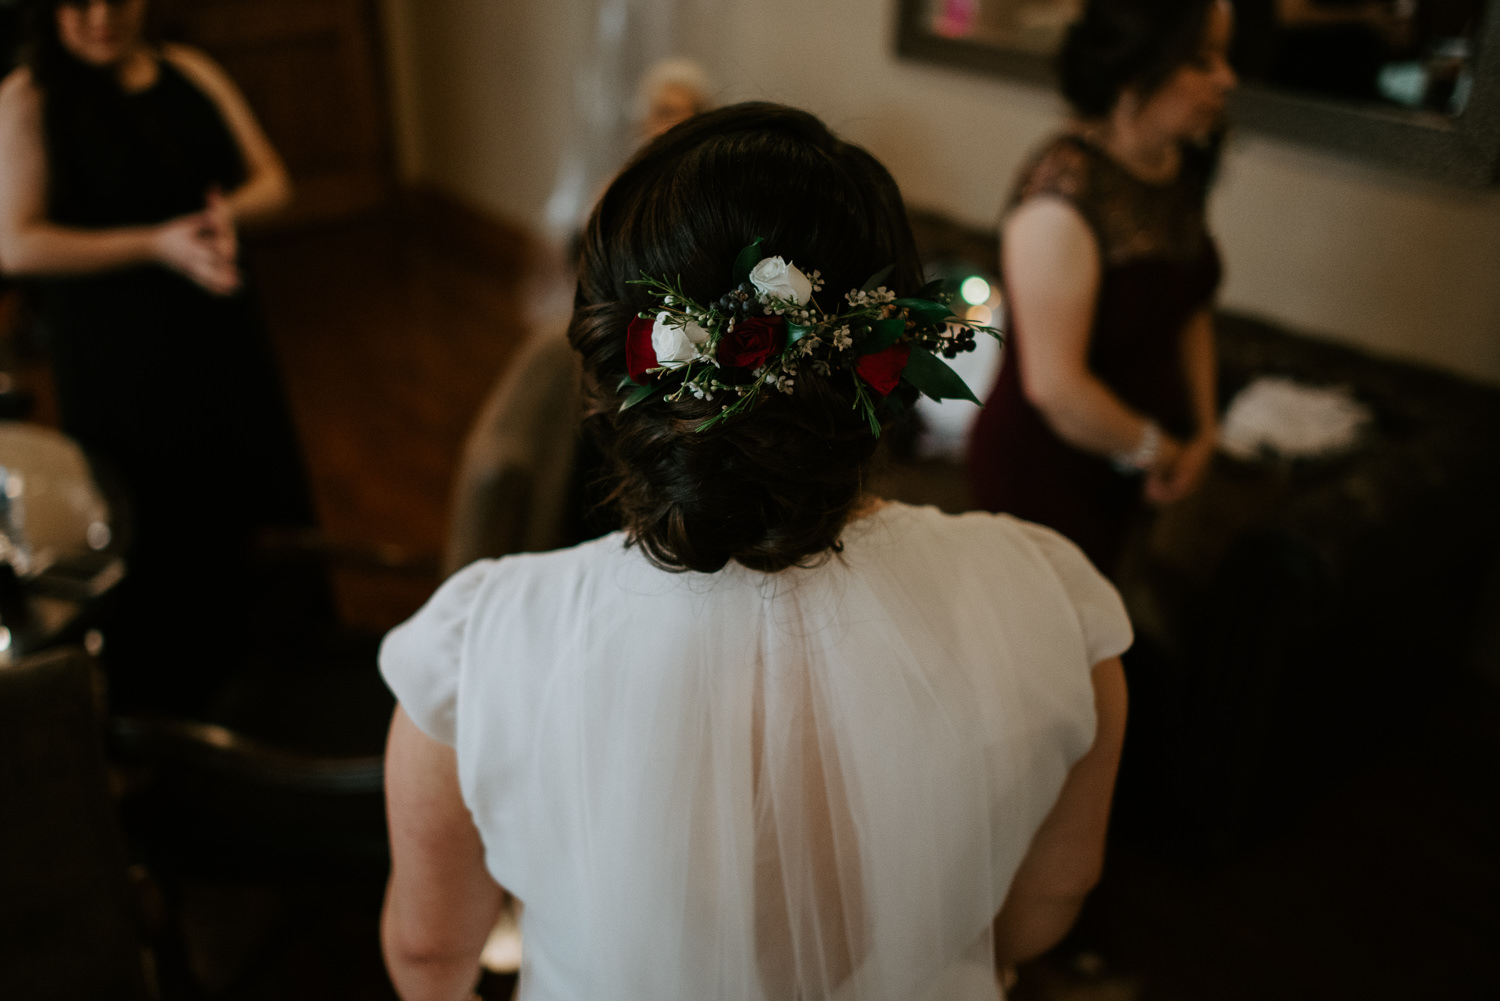 Bride with flowers in her hair